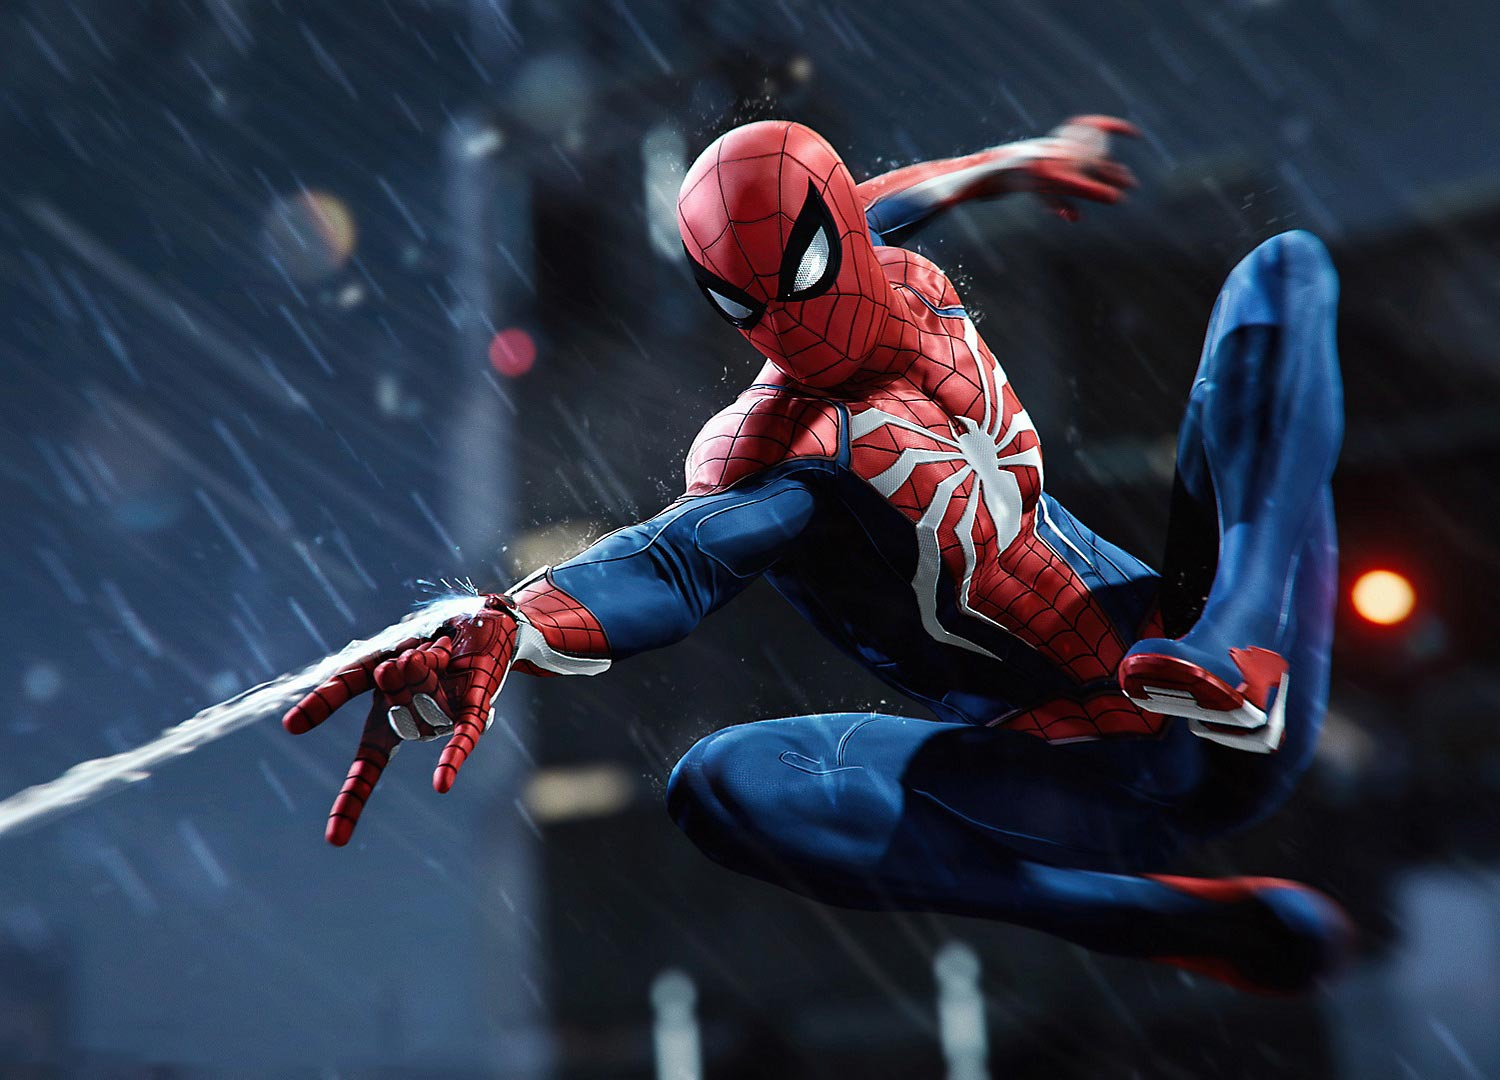 Sony Builds Spider-Man Hype With a Final Crime-Fighting Montage